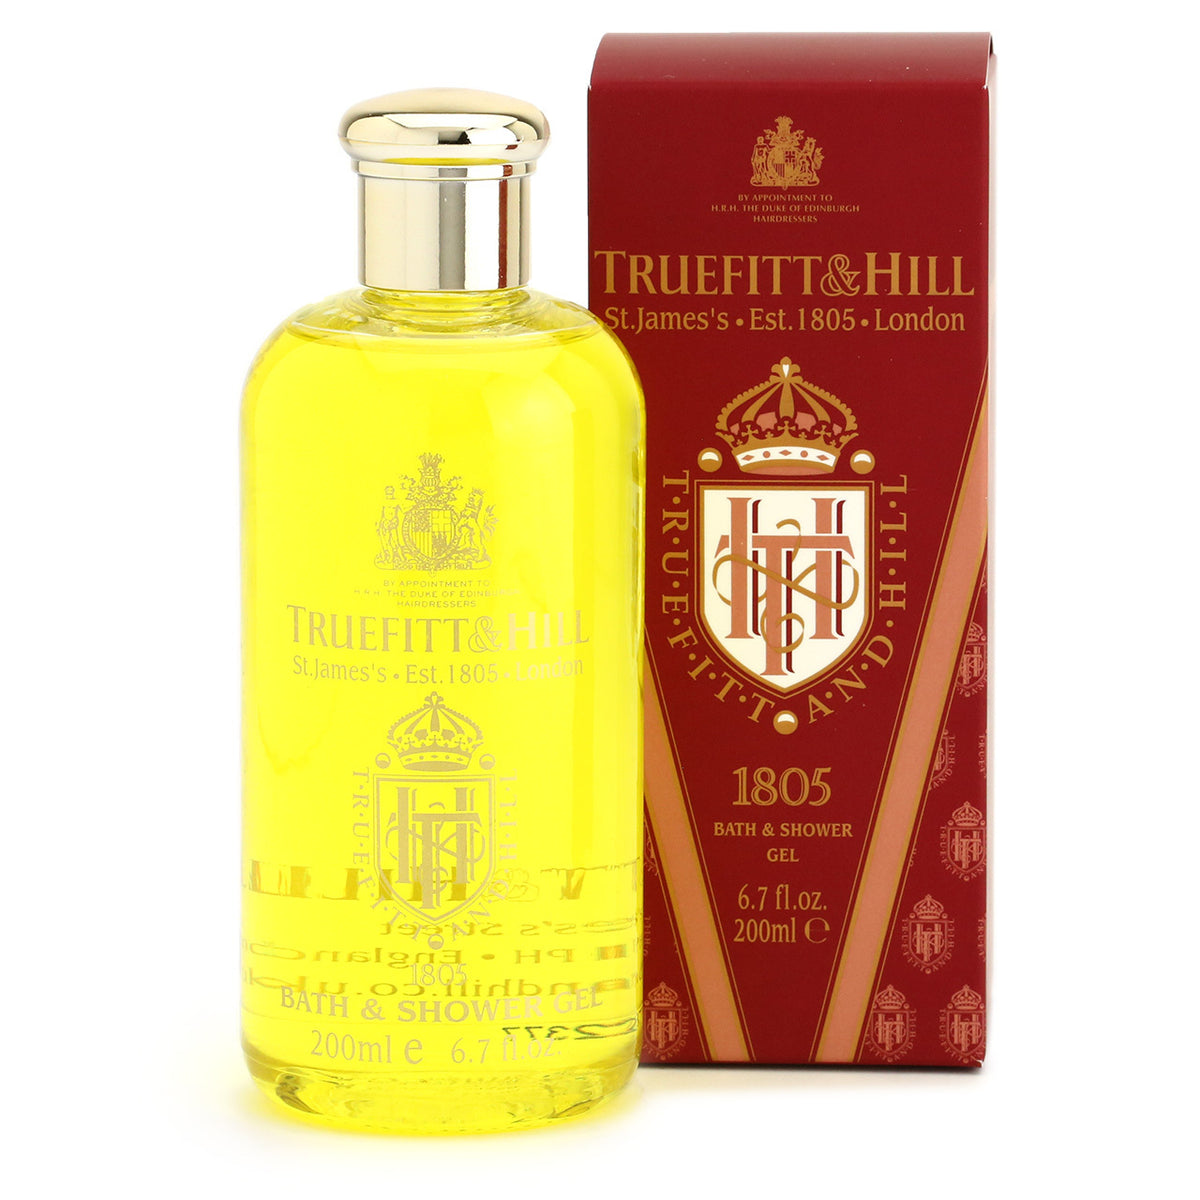 Truefitt & Hill Bath and Shower Gel 200ml - 1805